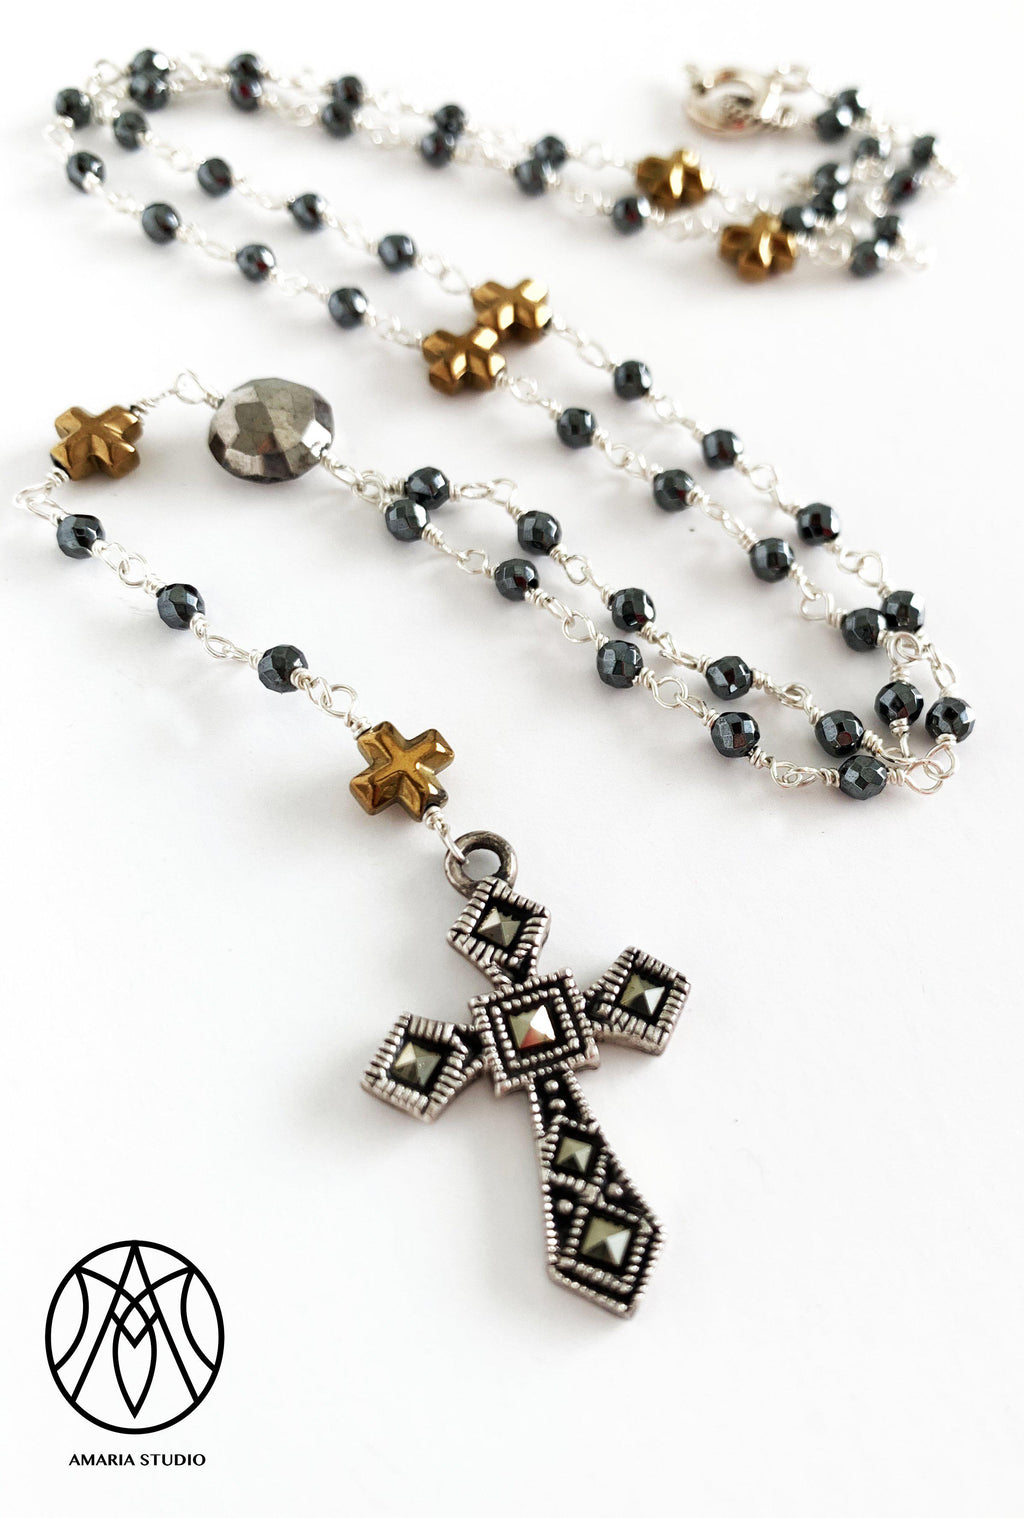 Hematite Rosary Necklace - Amaria Studio